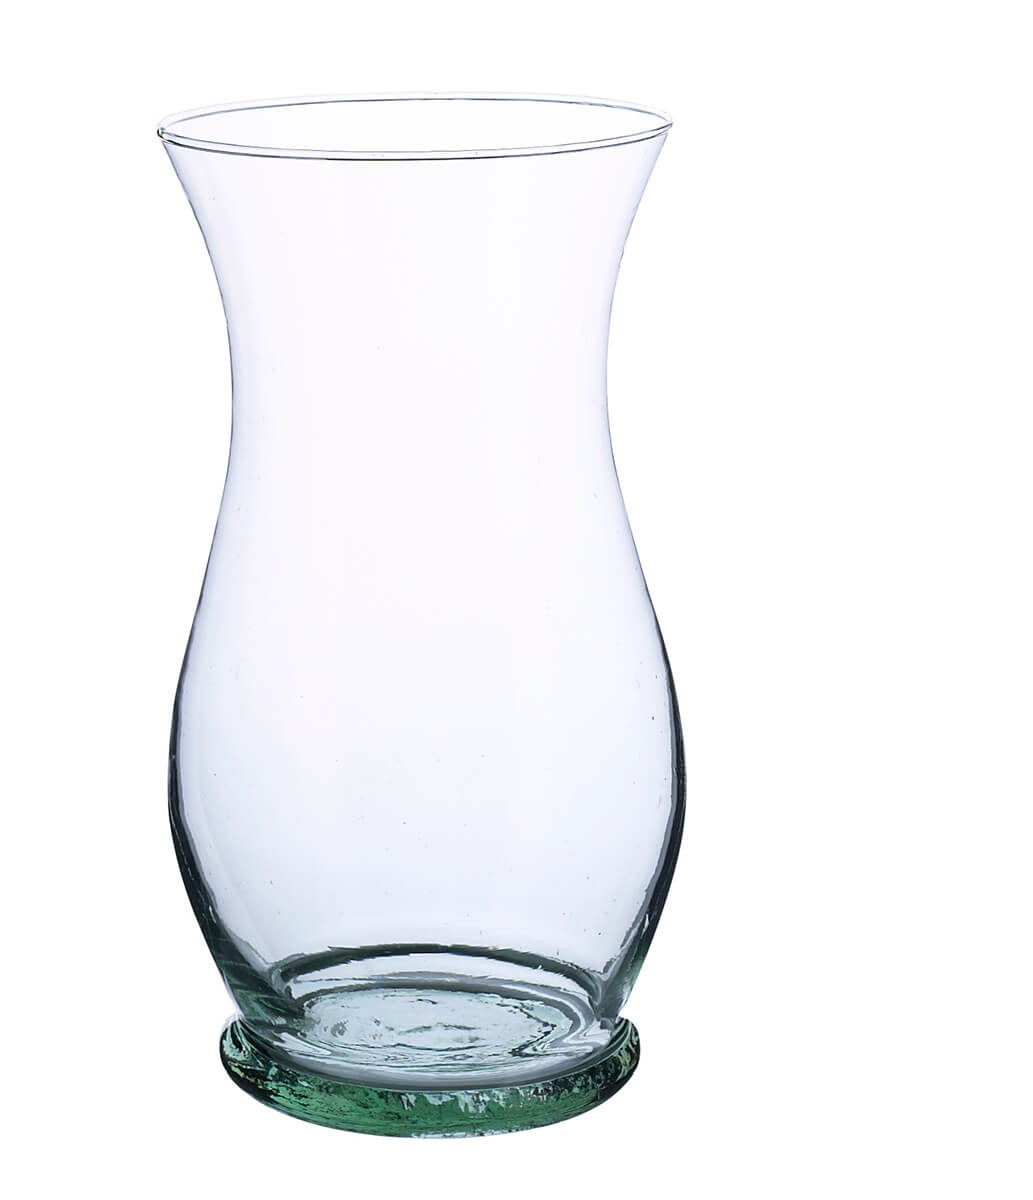 Wholesale Glass Vases Intl An importer of a wide selection of vase terrariums geometric floral décor and wedding centerpieces at lowest price